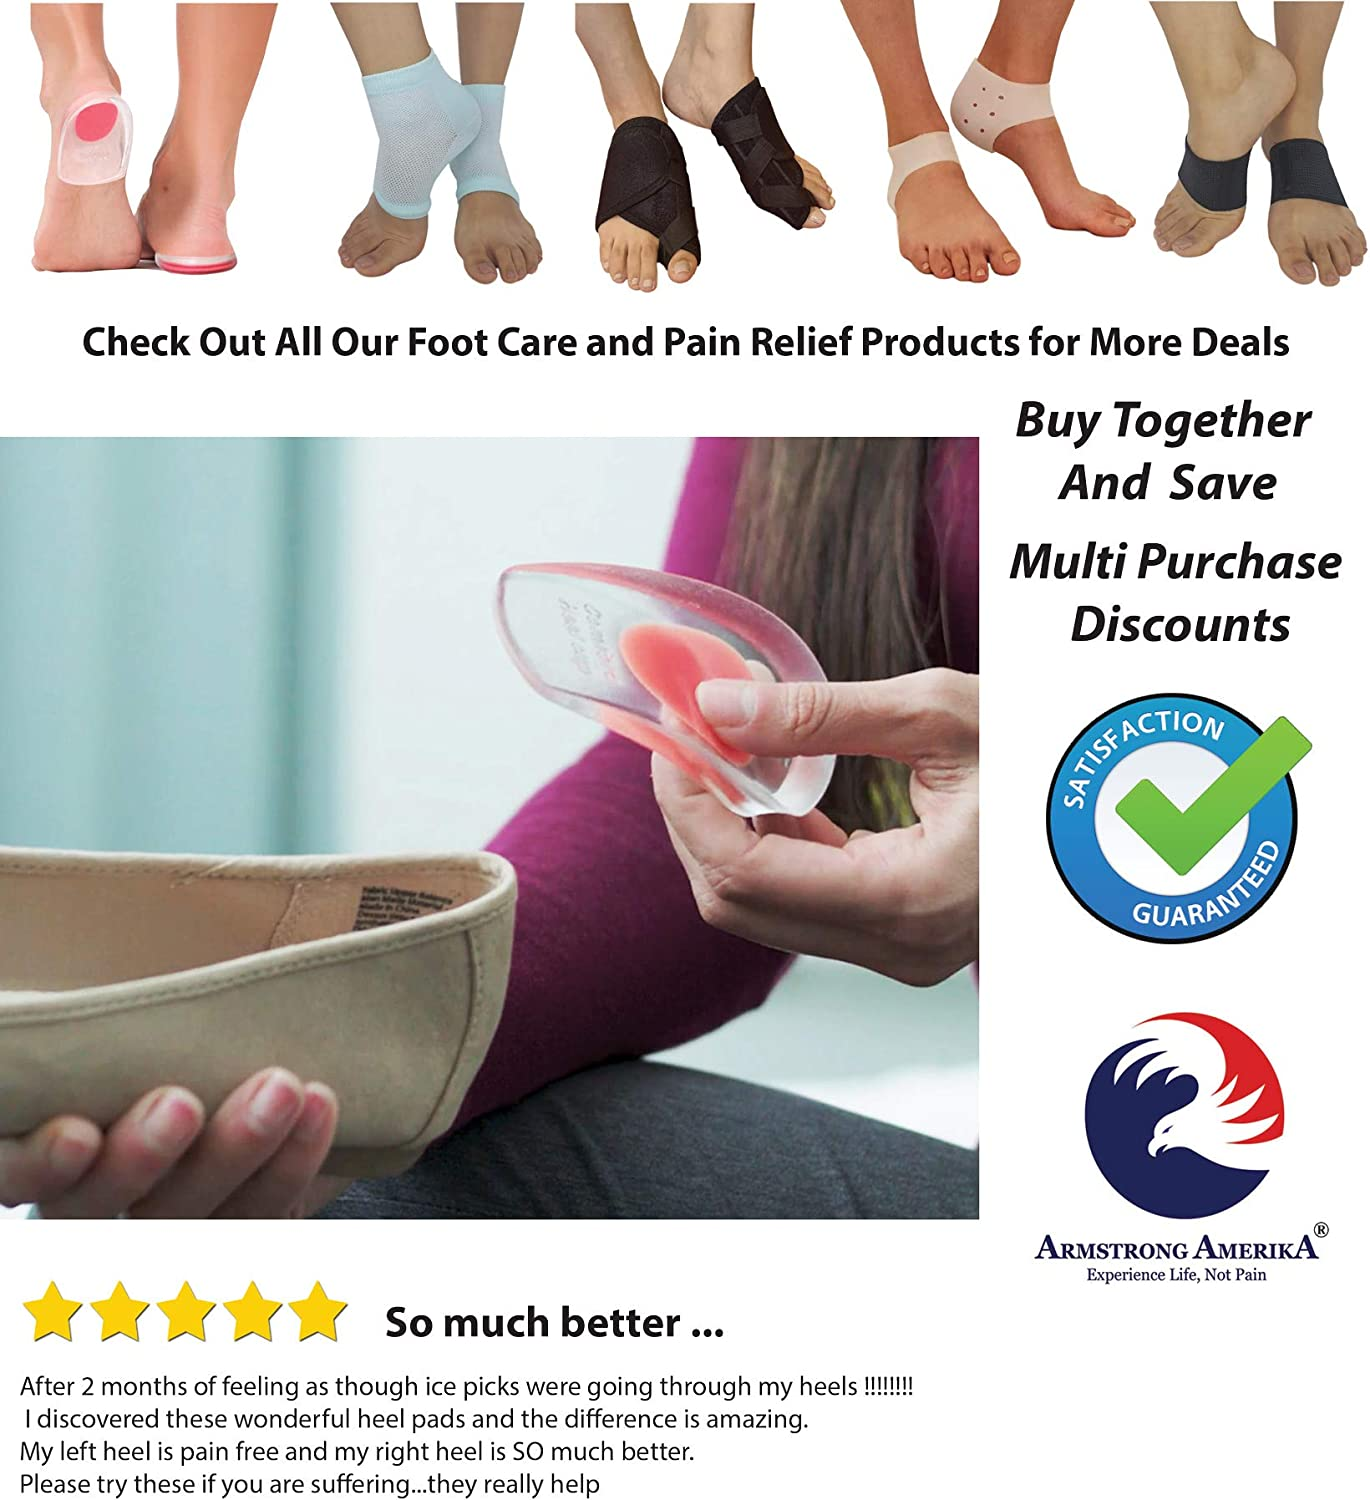 Gel Heel Cups Plantar Fasciitis Inserts - Silicone Heel Cup Pads for Bone Spurs Pain Relief Protectors of Your Sore or Bruised Feet Best Insole Gels Treatment by Armstrong Amerika (Small): Health & Personal Care